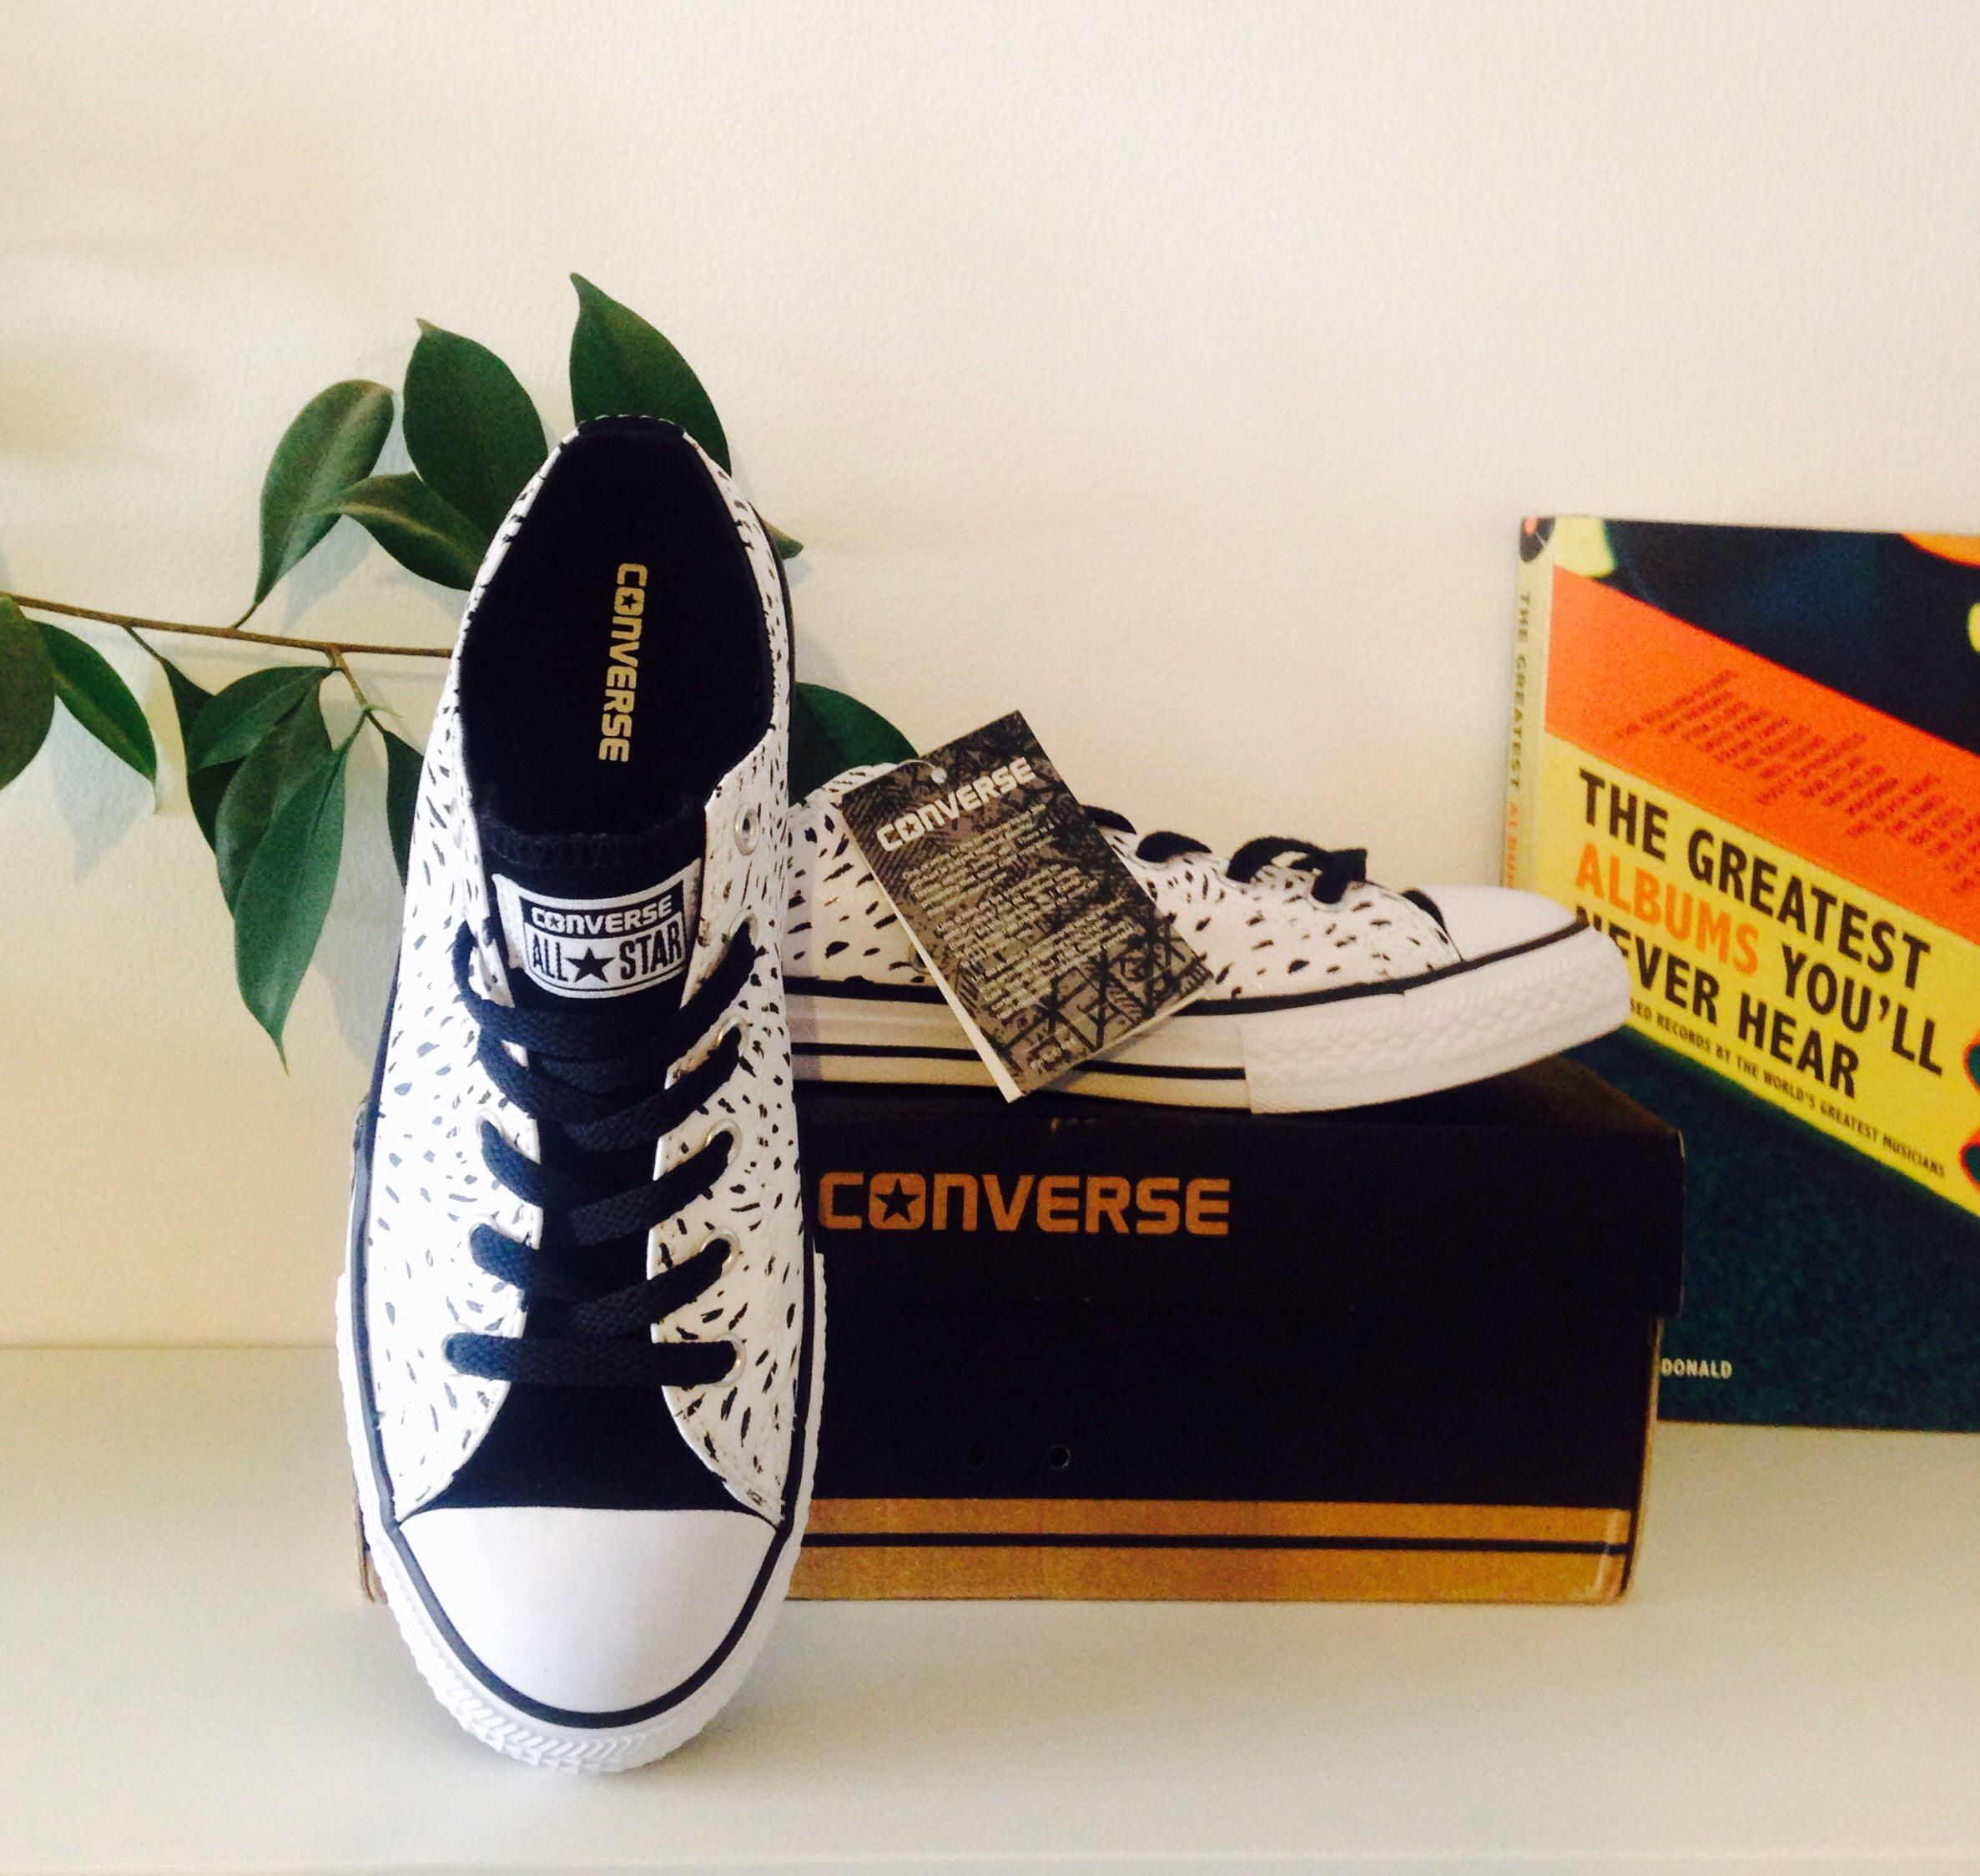 6fb8cb87d5da NEW Rare vintage style rare leather animal print black and white genuine  Converse all stars. Size 5 5.5 6 Excellent condition. Summer. by  FreerStyling on ...